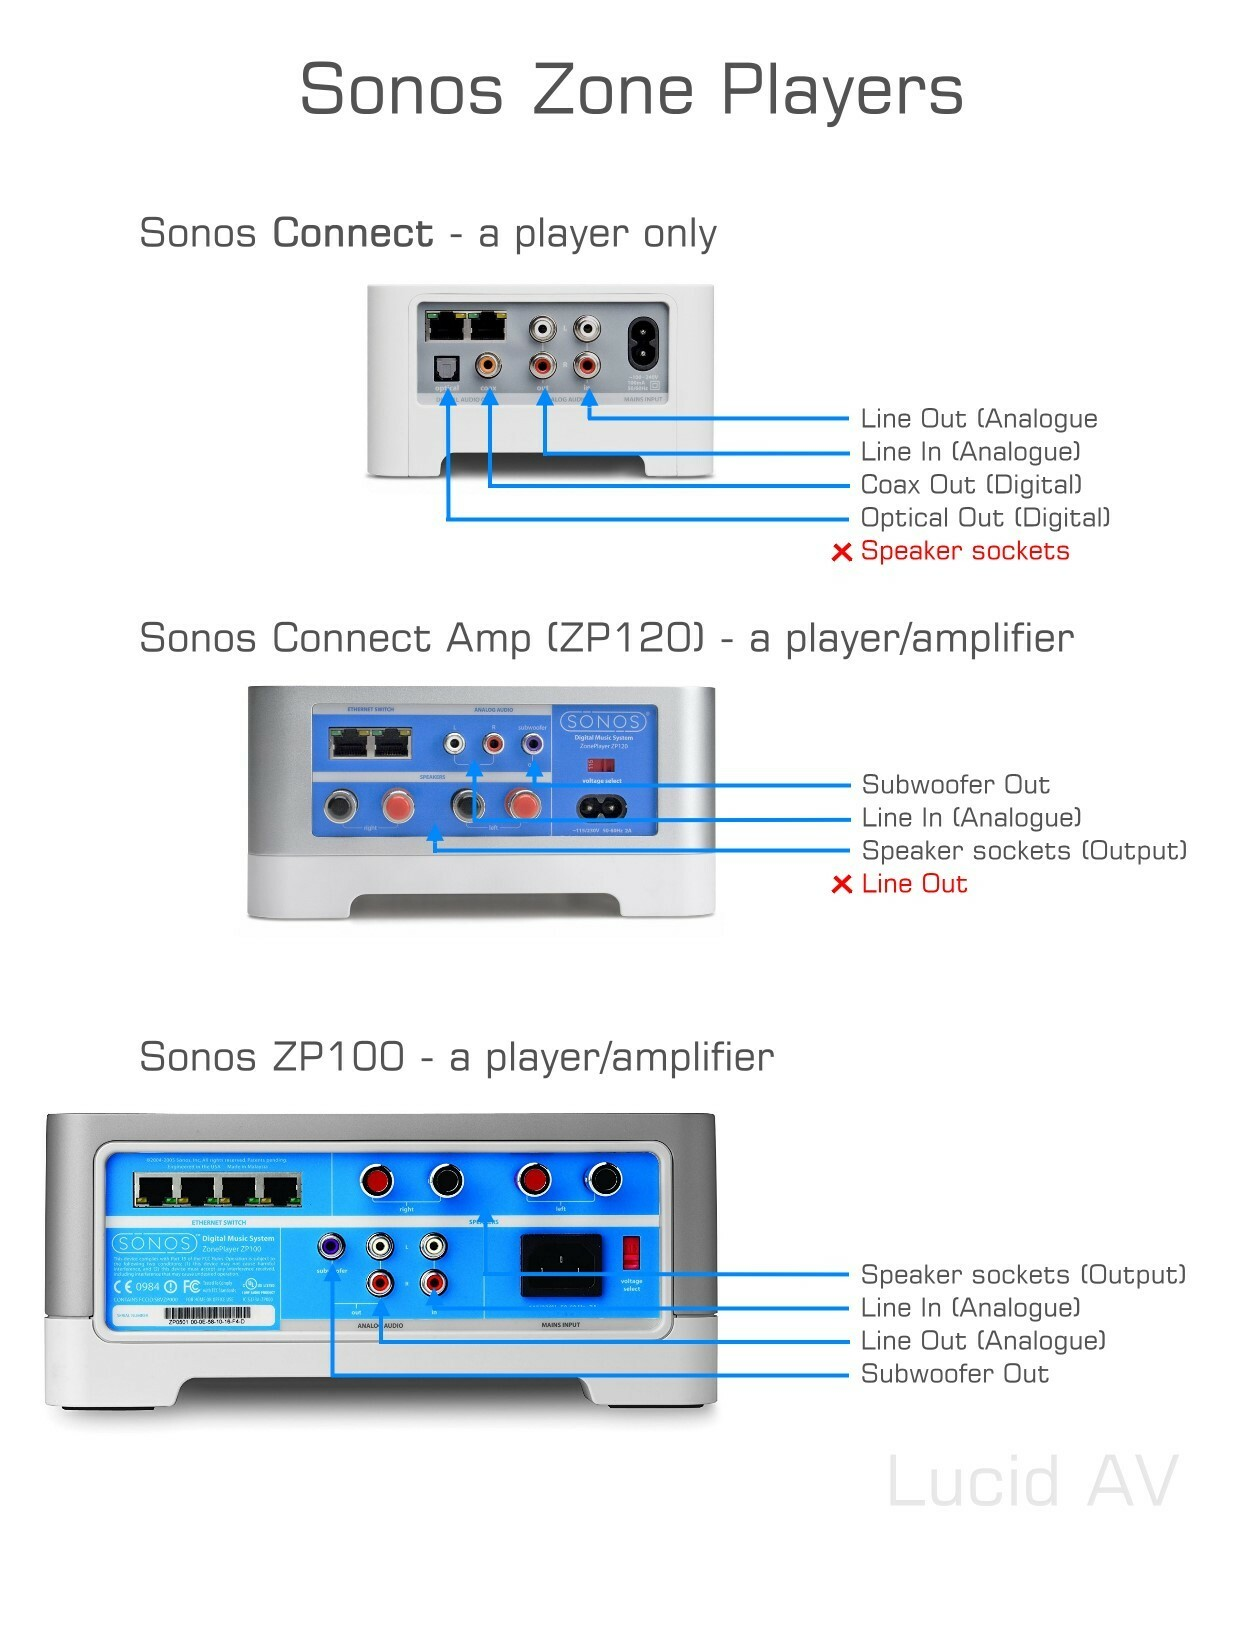 Sonos Connect Amp Wiring Diagram from uploads-eu-west-1.insided.com